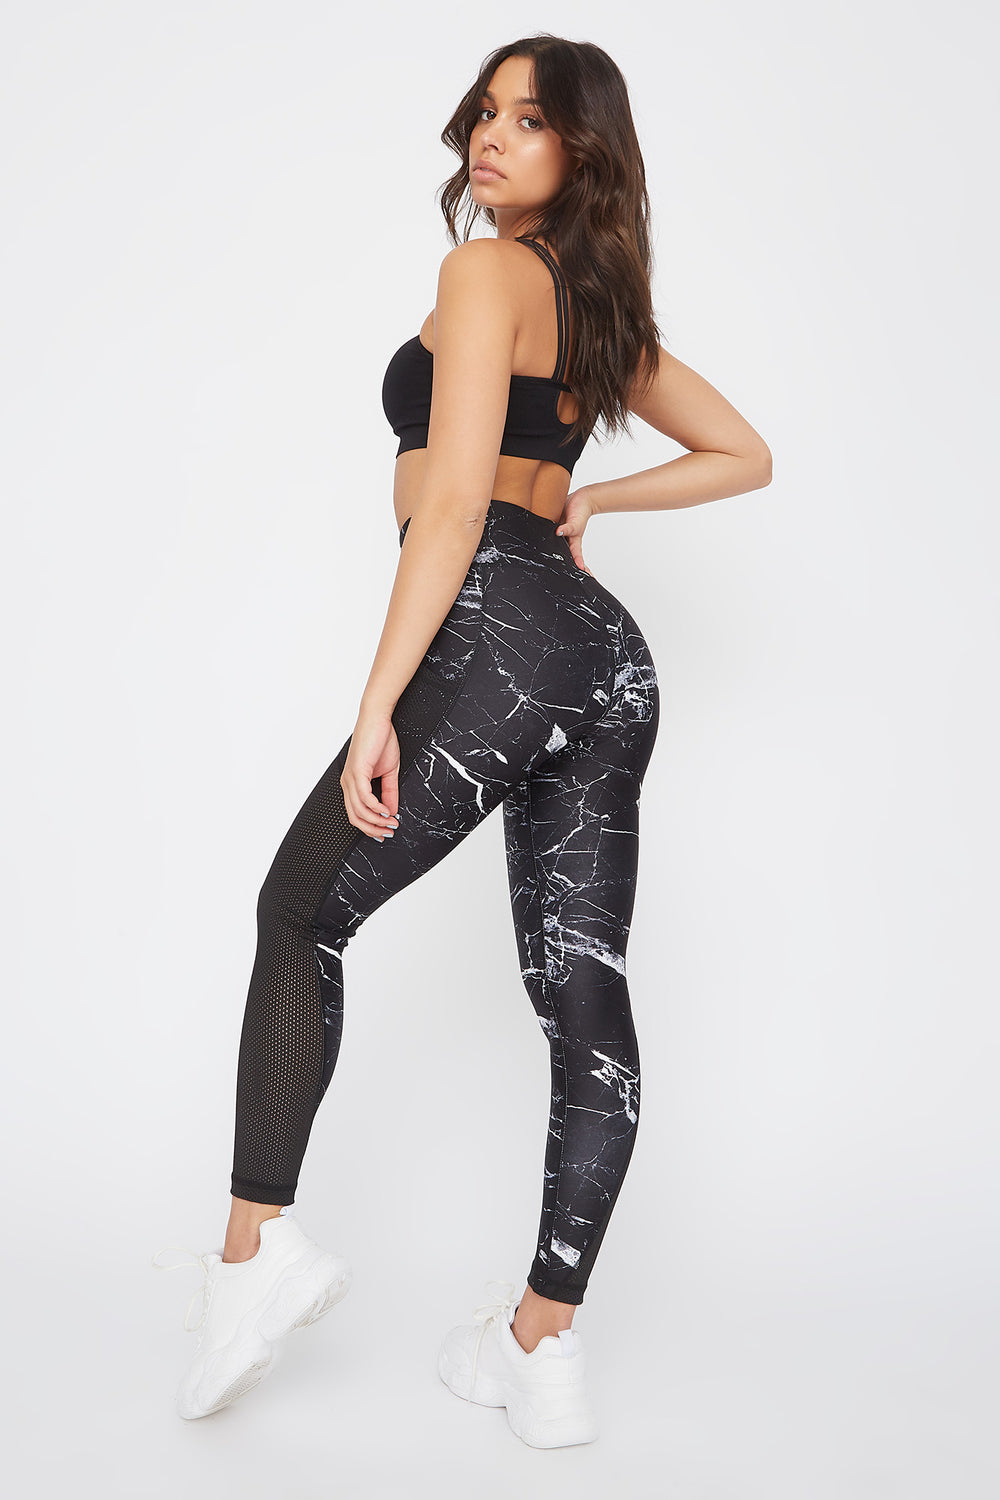 Infinite High-Rise Mesh Insert Active Legging Black with White